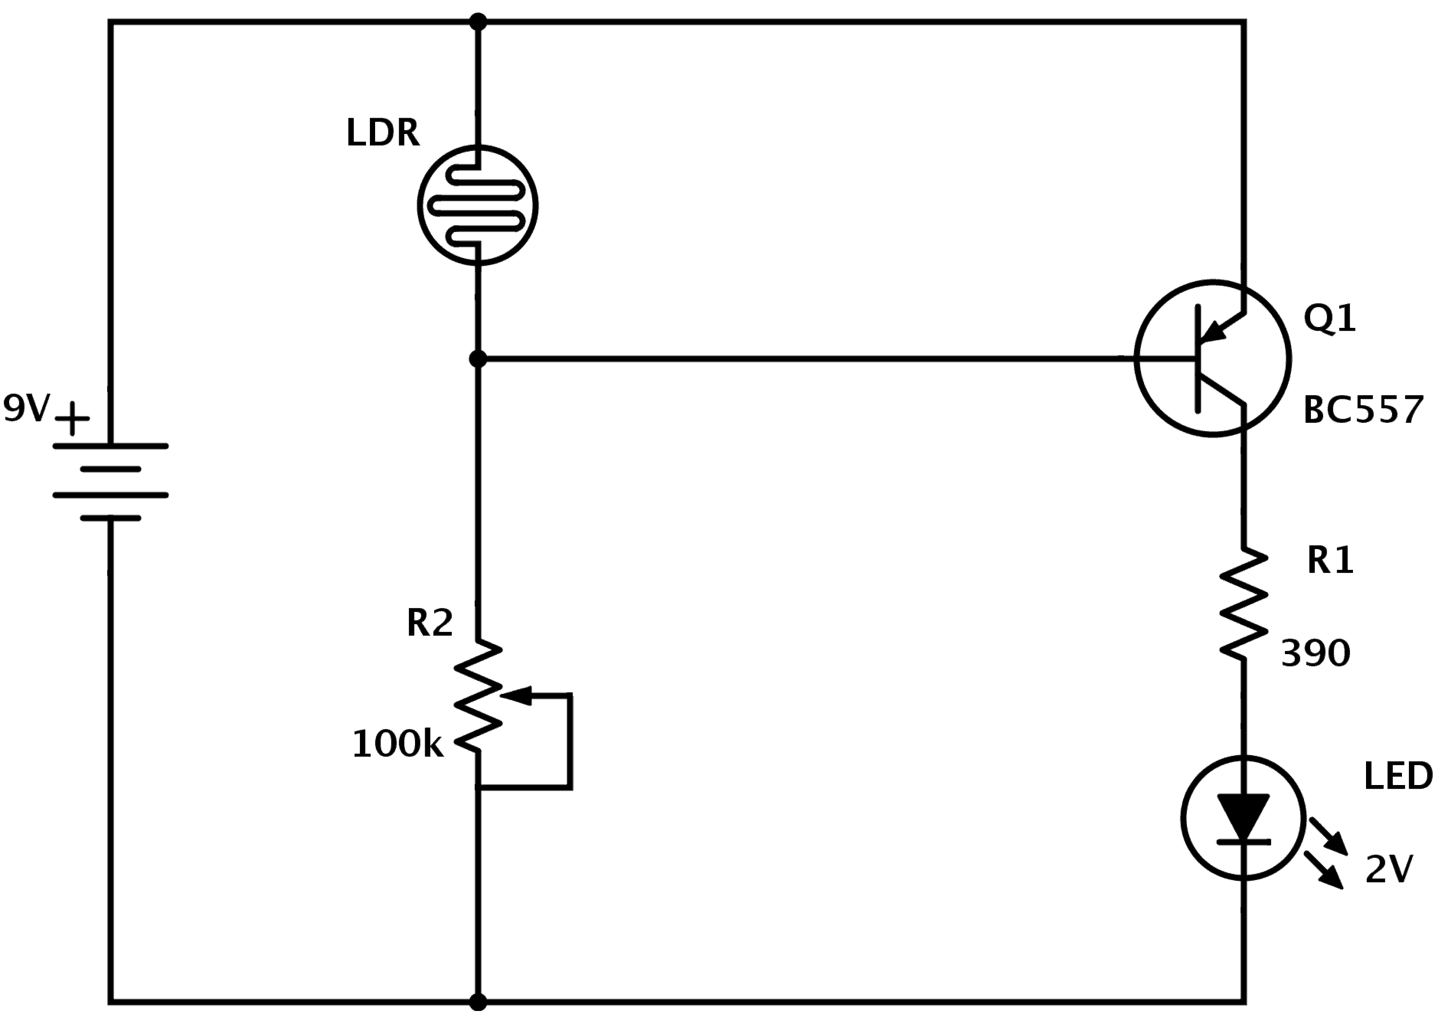 Ldr Circuit Diagram Build Electronic Circuits Wiring A Working Breadboard From Is Easy If You With Pnp Transistor Dark Detector